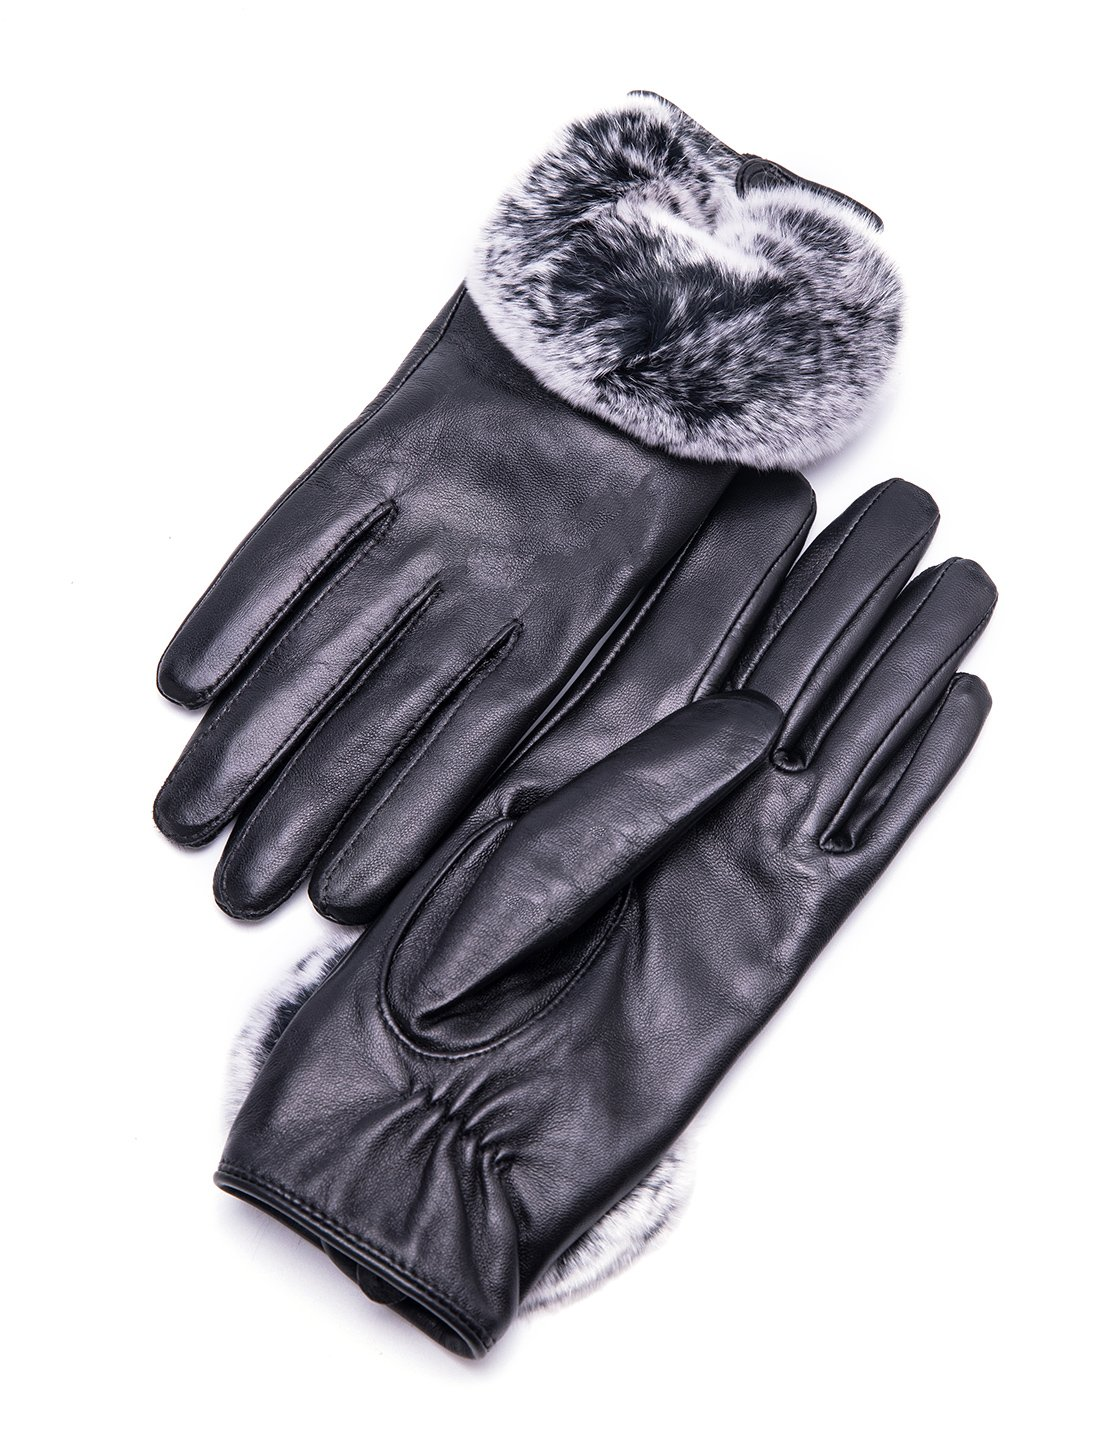 YISEVEN Women's Touchscreen Lambskin Leather Gloves Rex Rabbit Fur Cuff Soft Hand Warm Heated Fleece Lined Luxury Ladies Winter Accessories Dress Driving Xmas Gift Packed, Black 7.0''/M